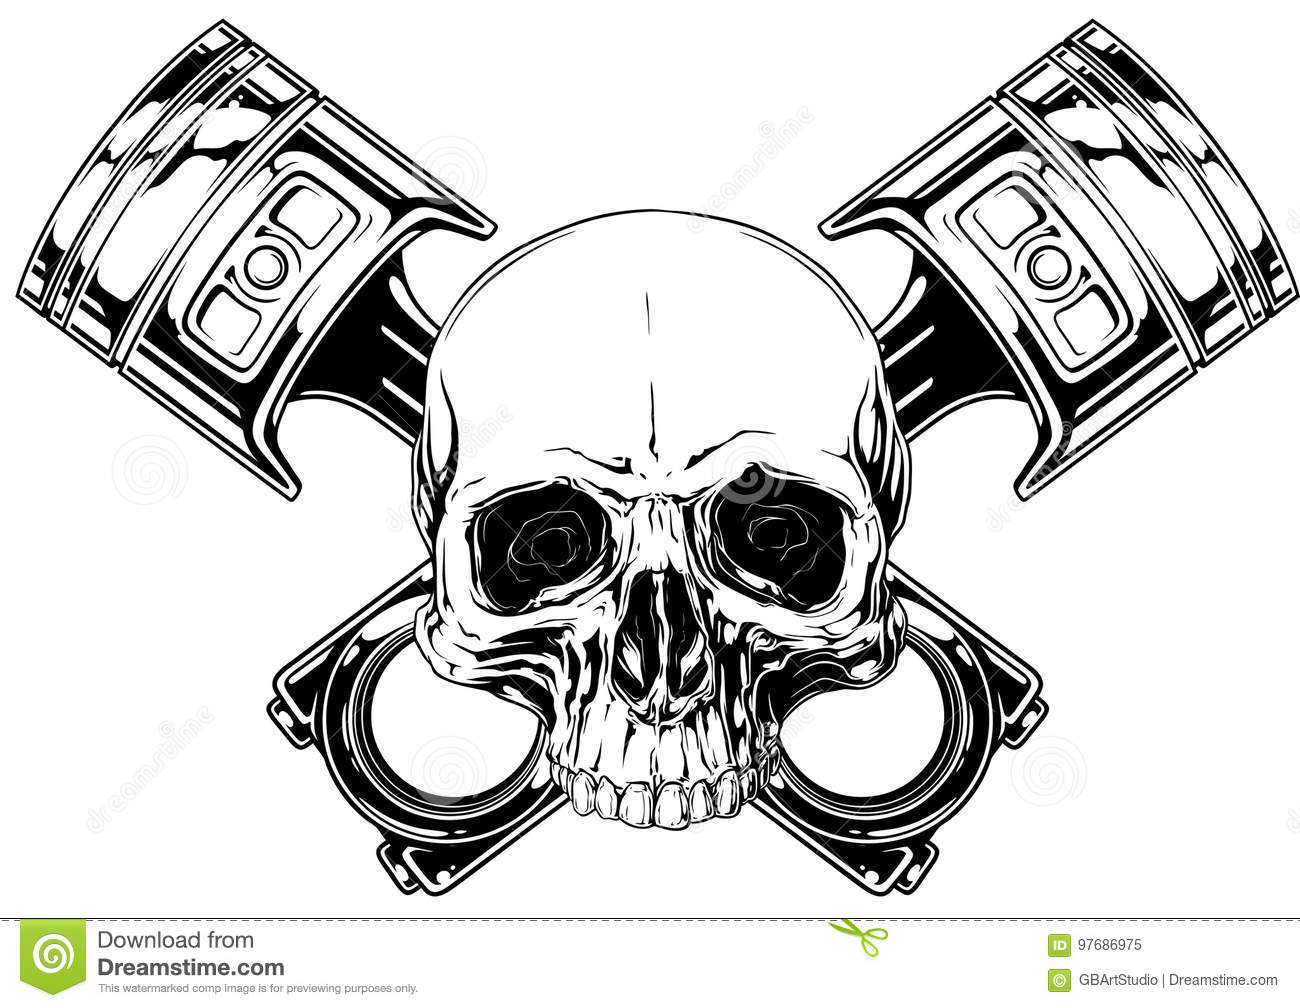 10b7dcb060e68 Graphic detailed black and white human skull with crossed car pistons on  white background vector